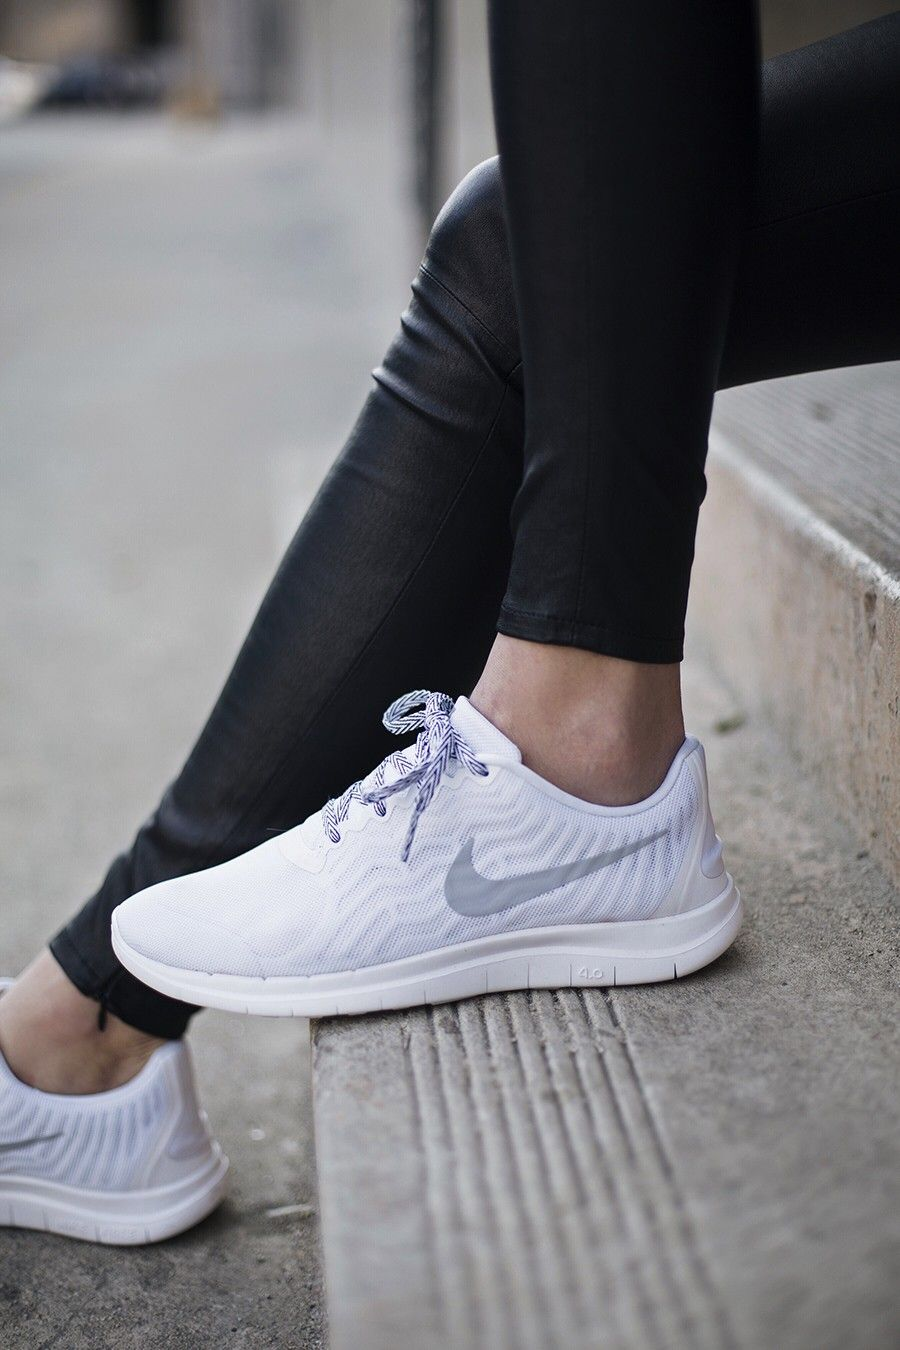 nike free 4.0 id women's white leggings